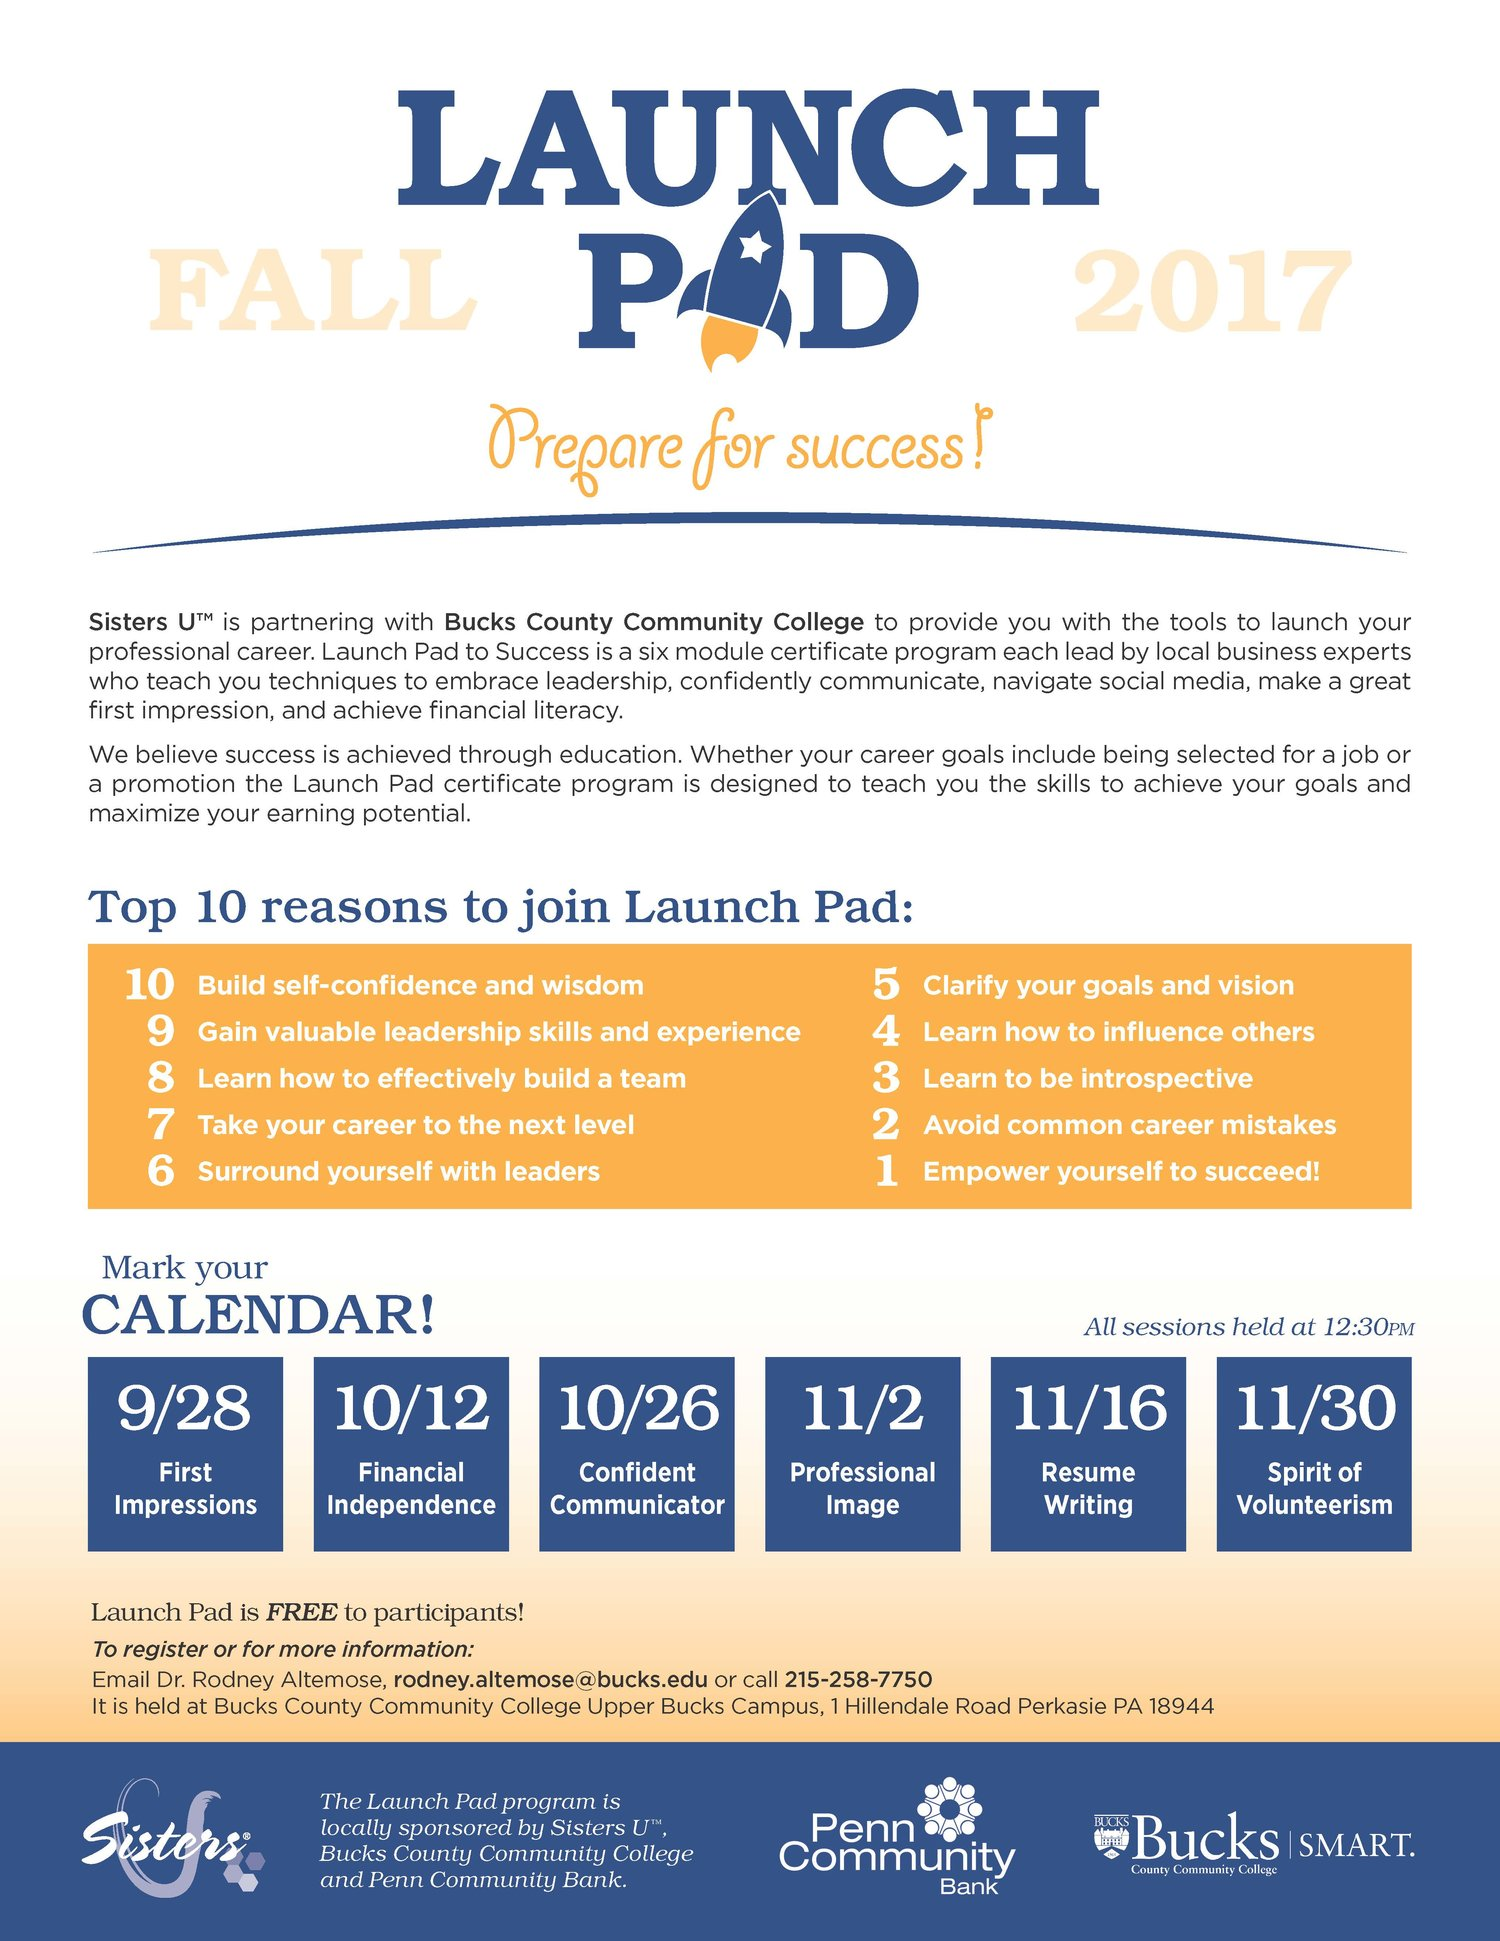 launch pad prepare for success module 5 resume writing sisters